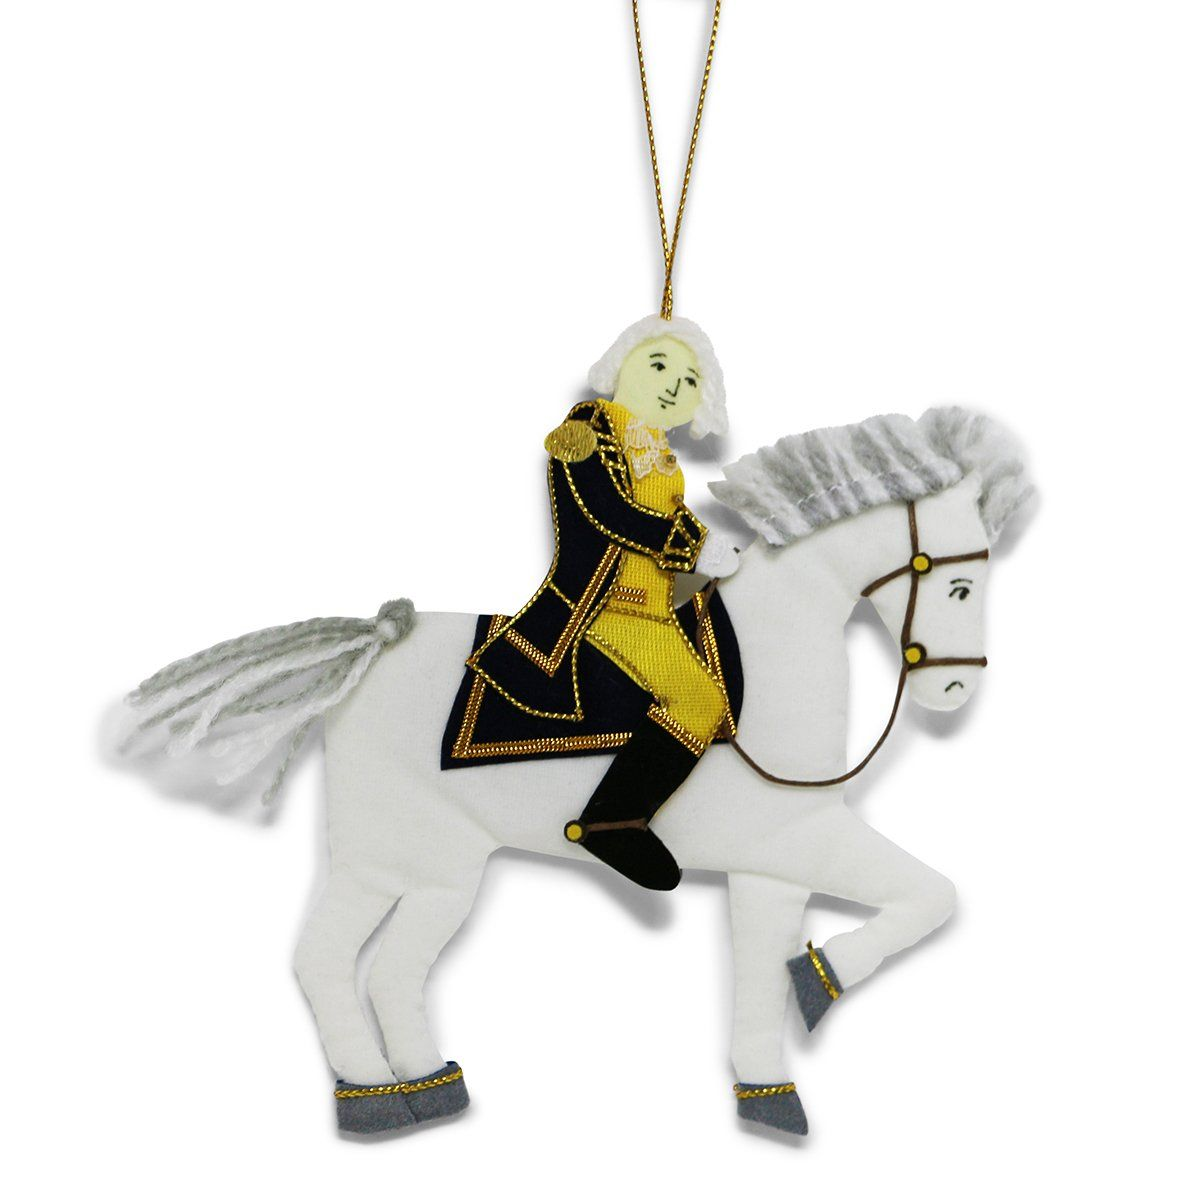 George Washington & Blueskin Ornament